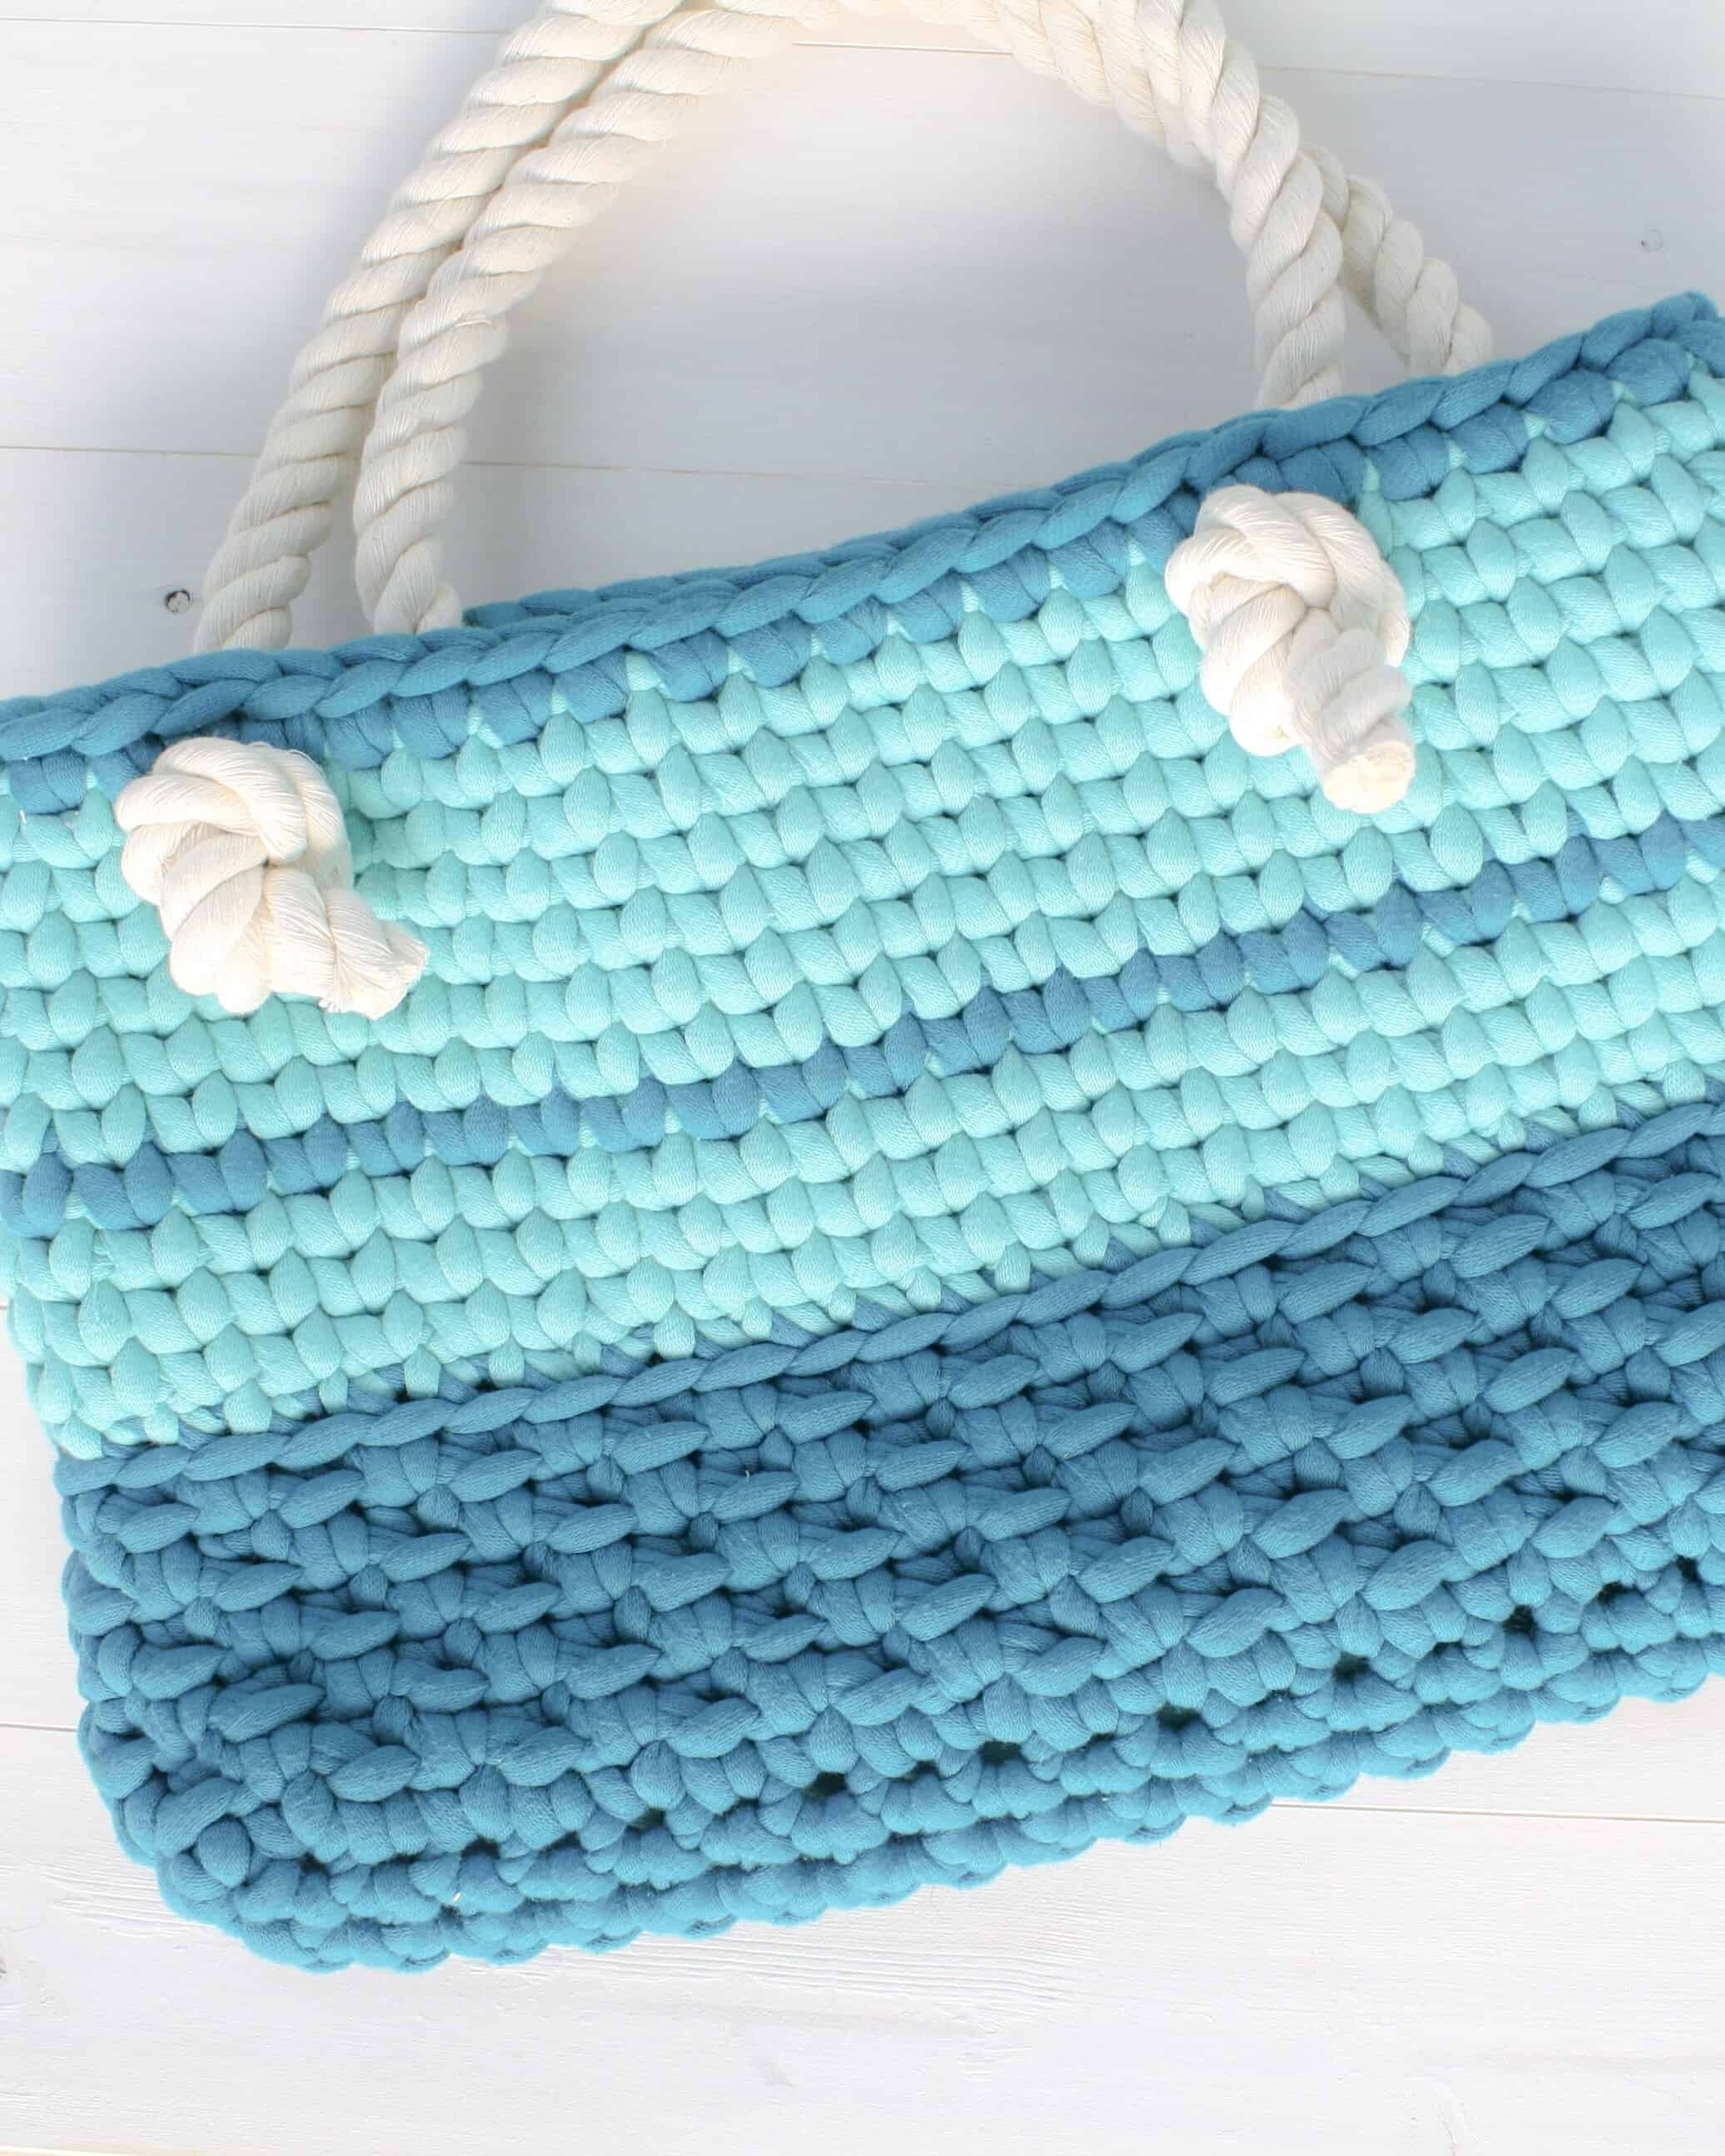 Crochet up this quick Summer Day Bag to compliment any of your summer outfits. This project uses Bernat Maker Big yarn and works up in only 22 rows. The free crochet pattern walks you through how to modify a single crochet stitch to create lots of texture. #crochet #freecrochet #freepattern #quick #texture #bag #crochetbag